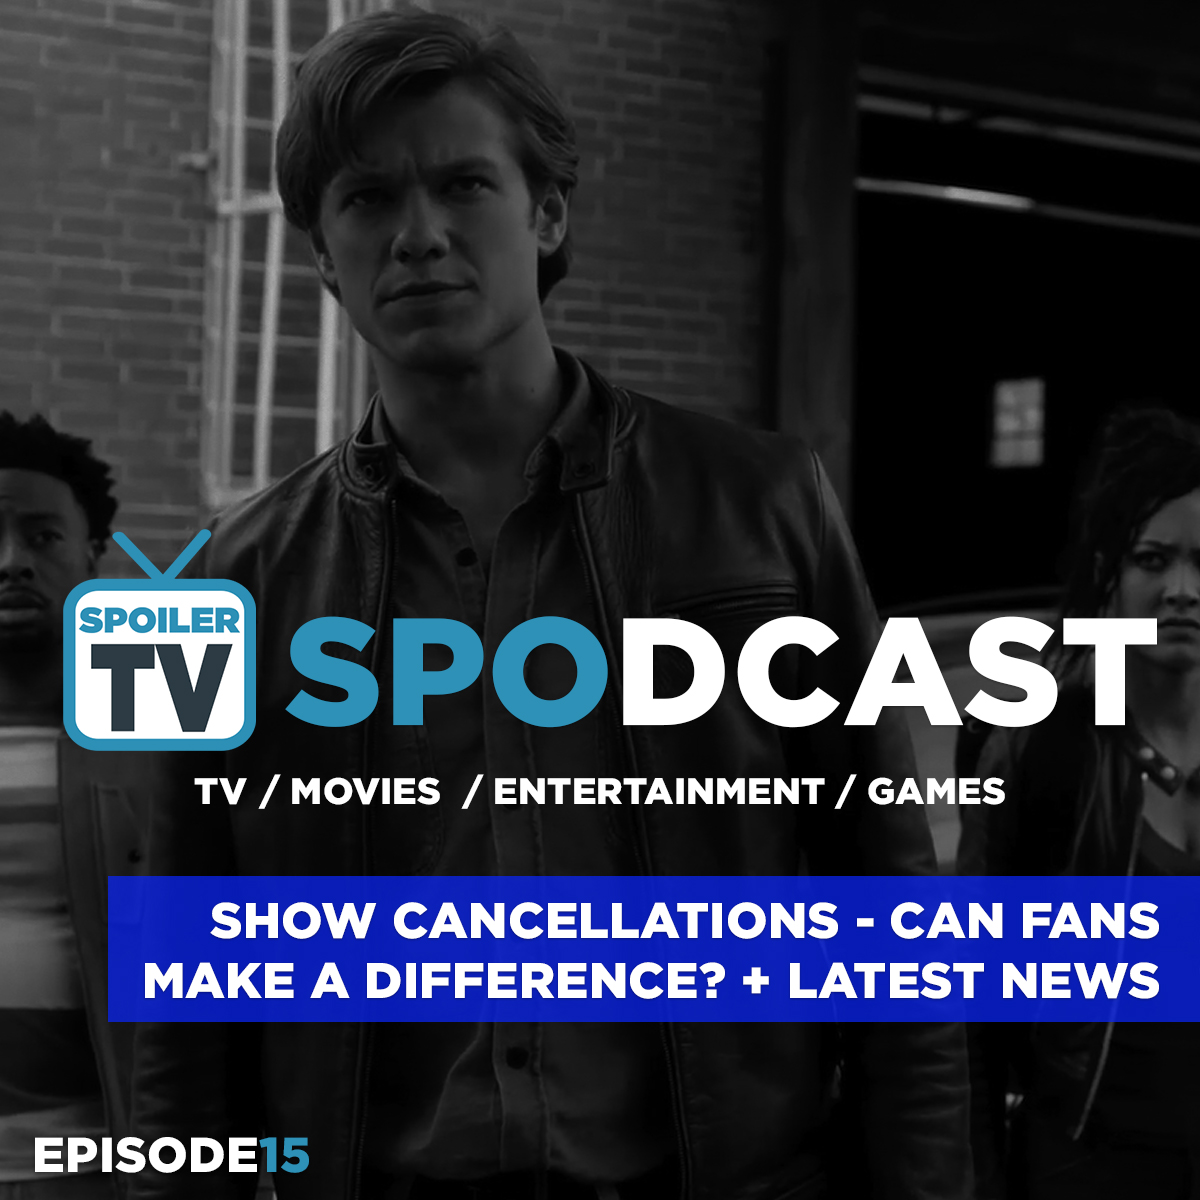 Show Cancellations - Can fans make a difference? + Marvel, PS5 and more - SpoilerTV Spodcast 15